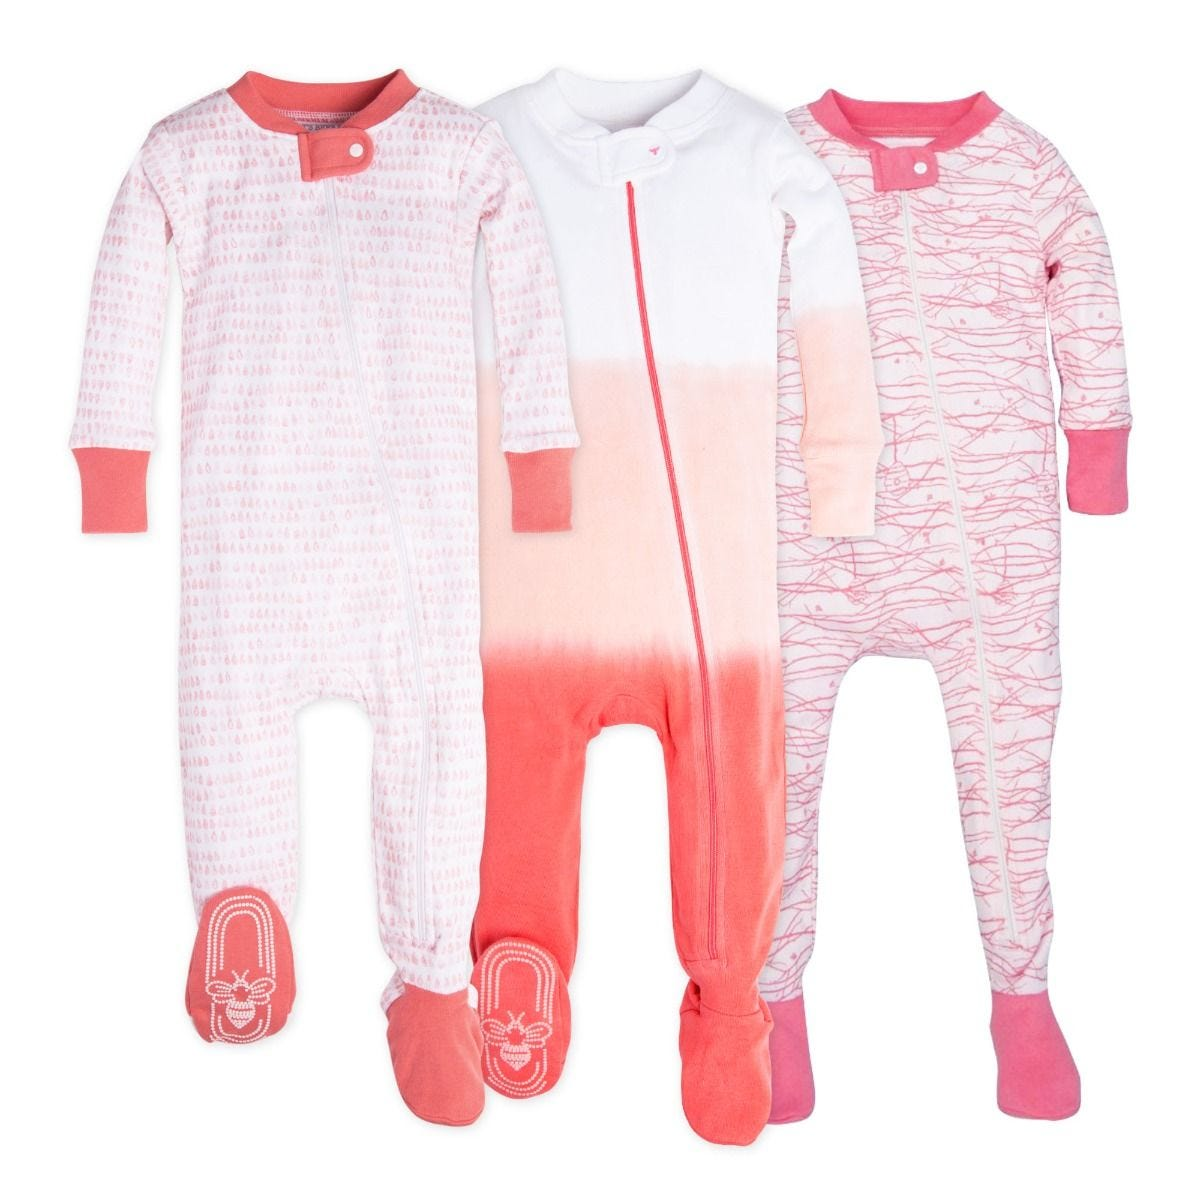 b94917cd3336 Set of 3 Organic Baby Girl Zip Up Footed Pajamas